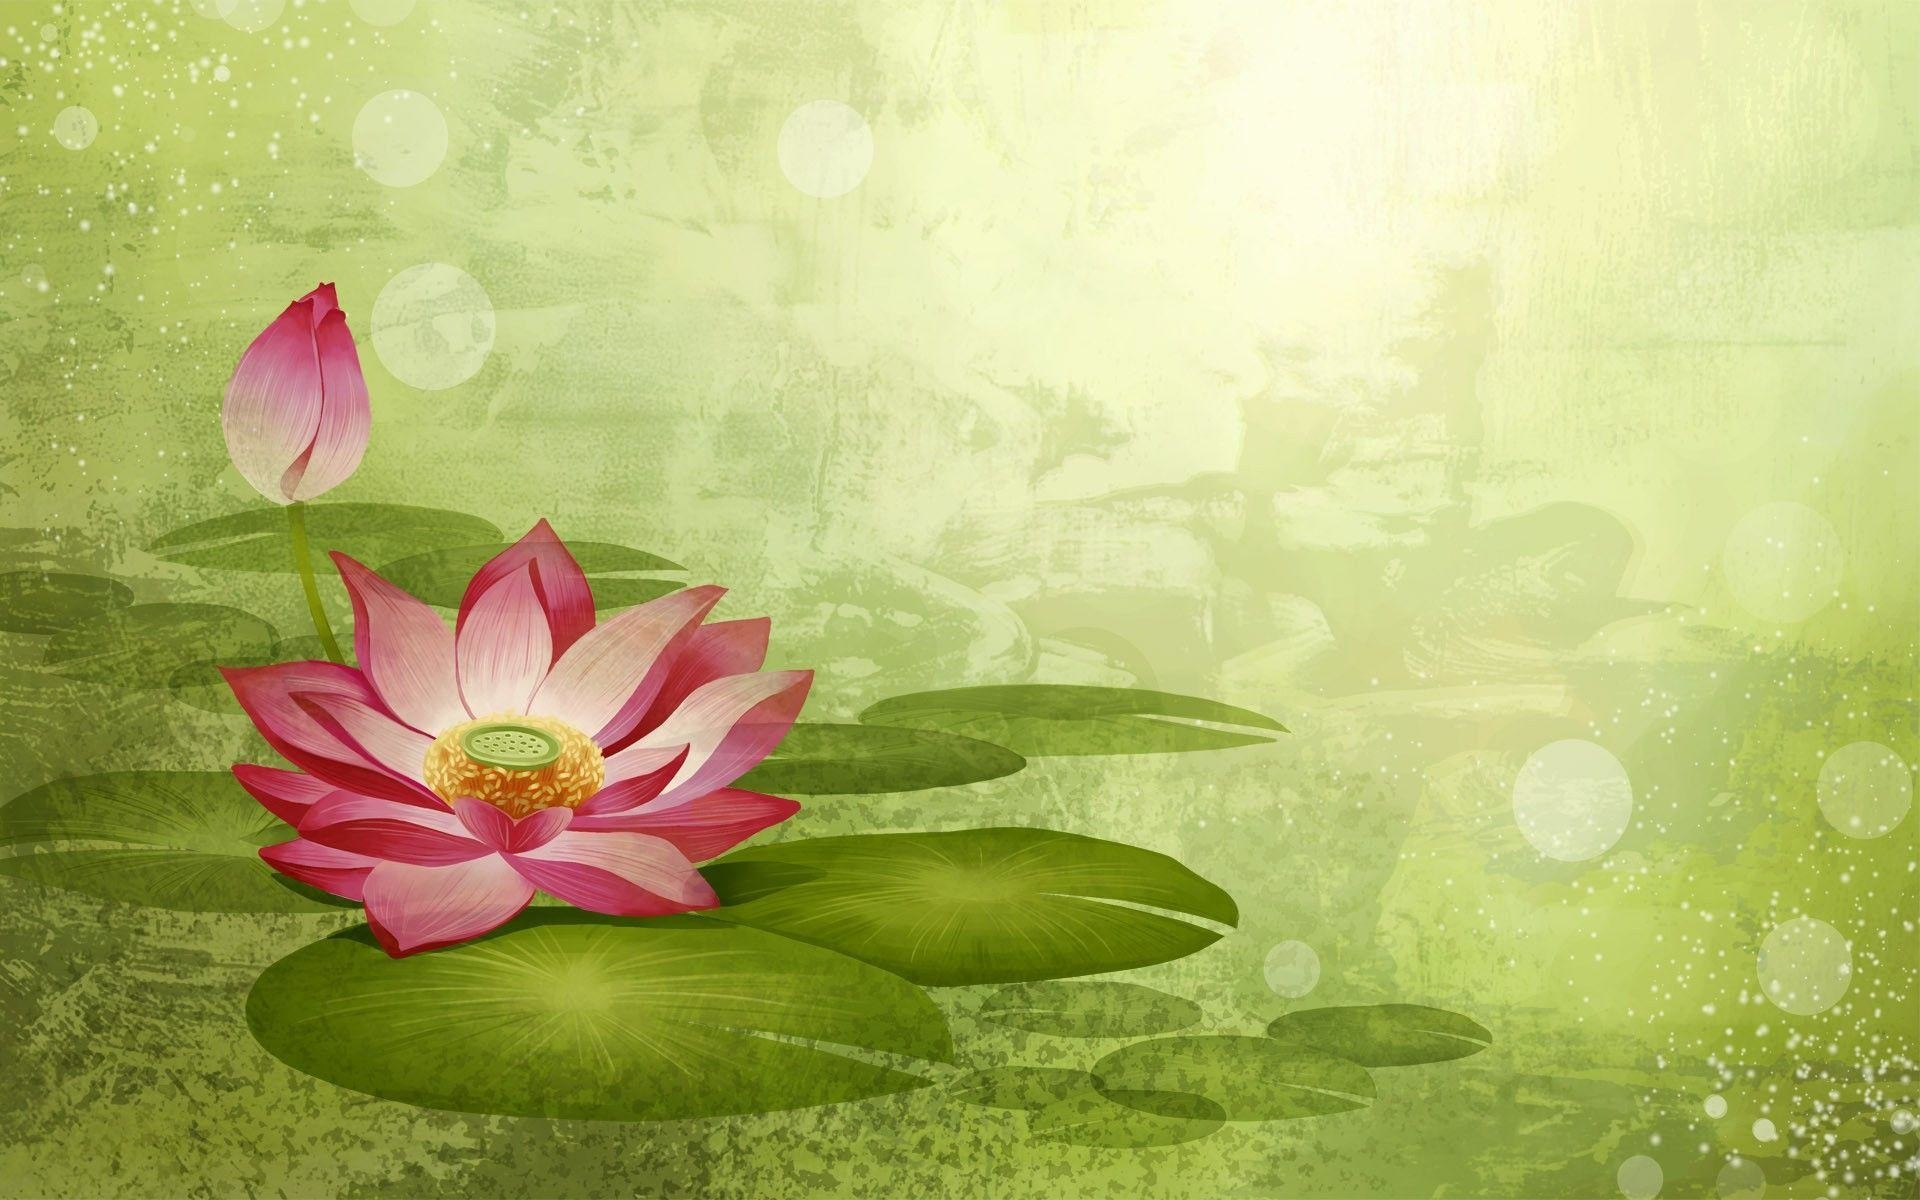 Lotus flower background 54 images 1920x1200 lotus flowers wallpaper 580796 mightylinksfo